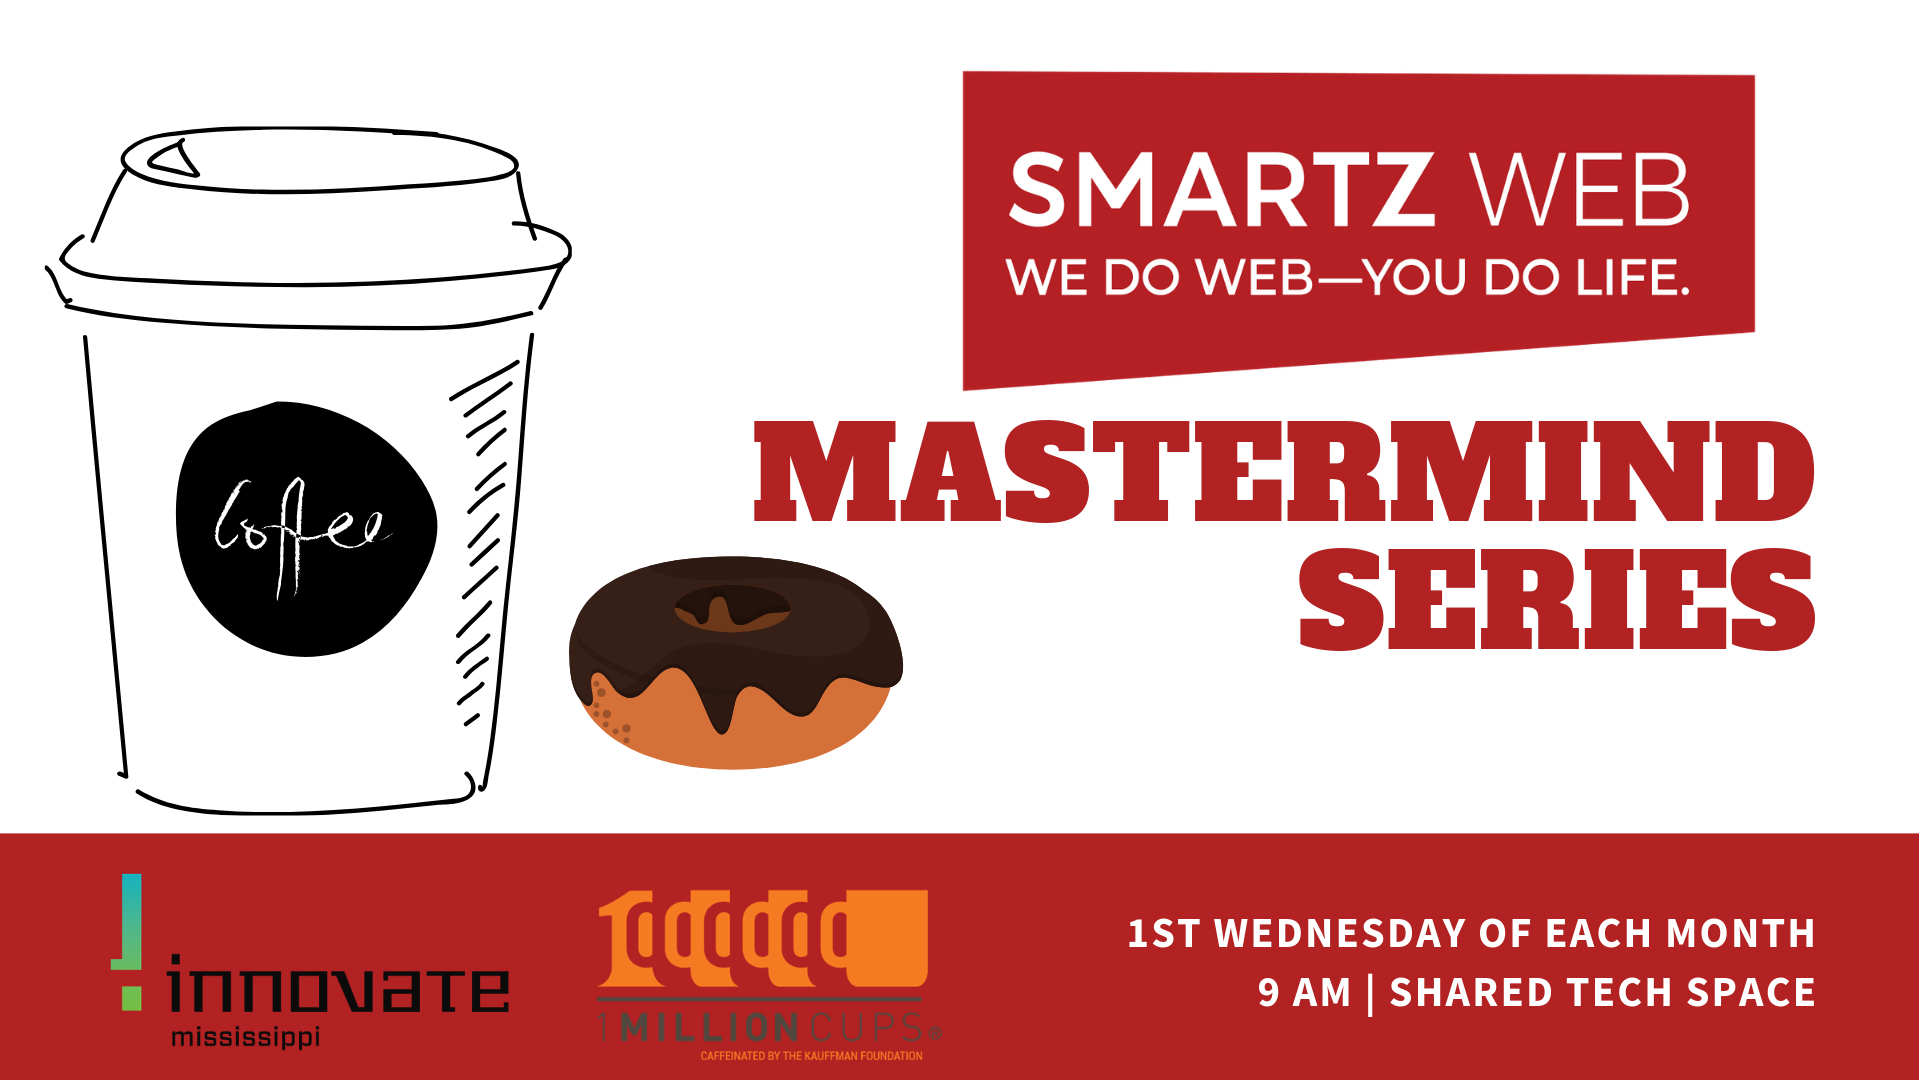 Smartzweb's Mastermind Series - Donuts and Coffee